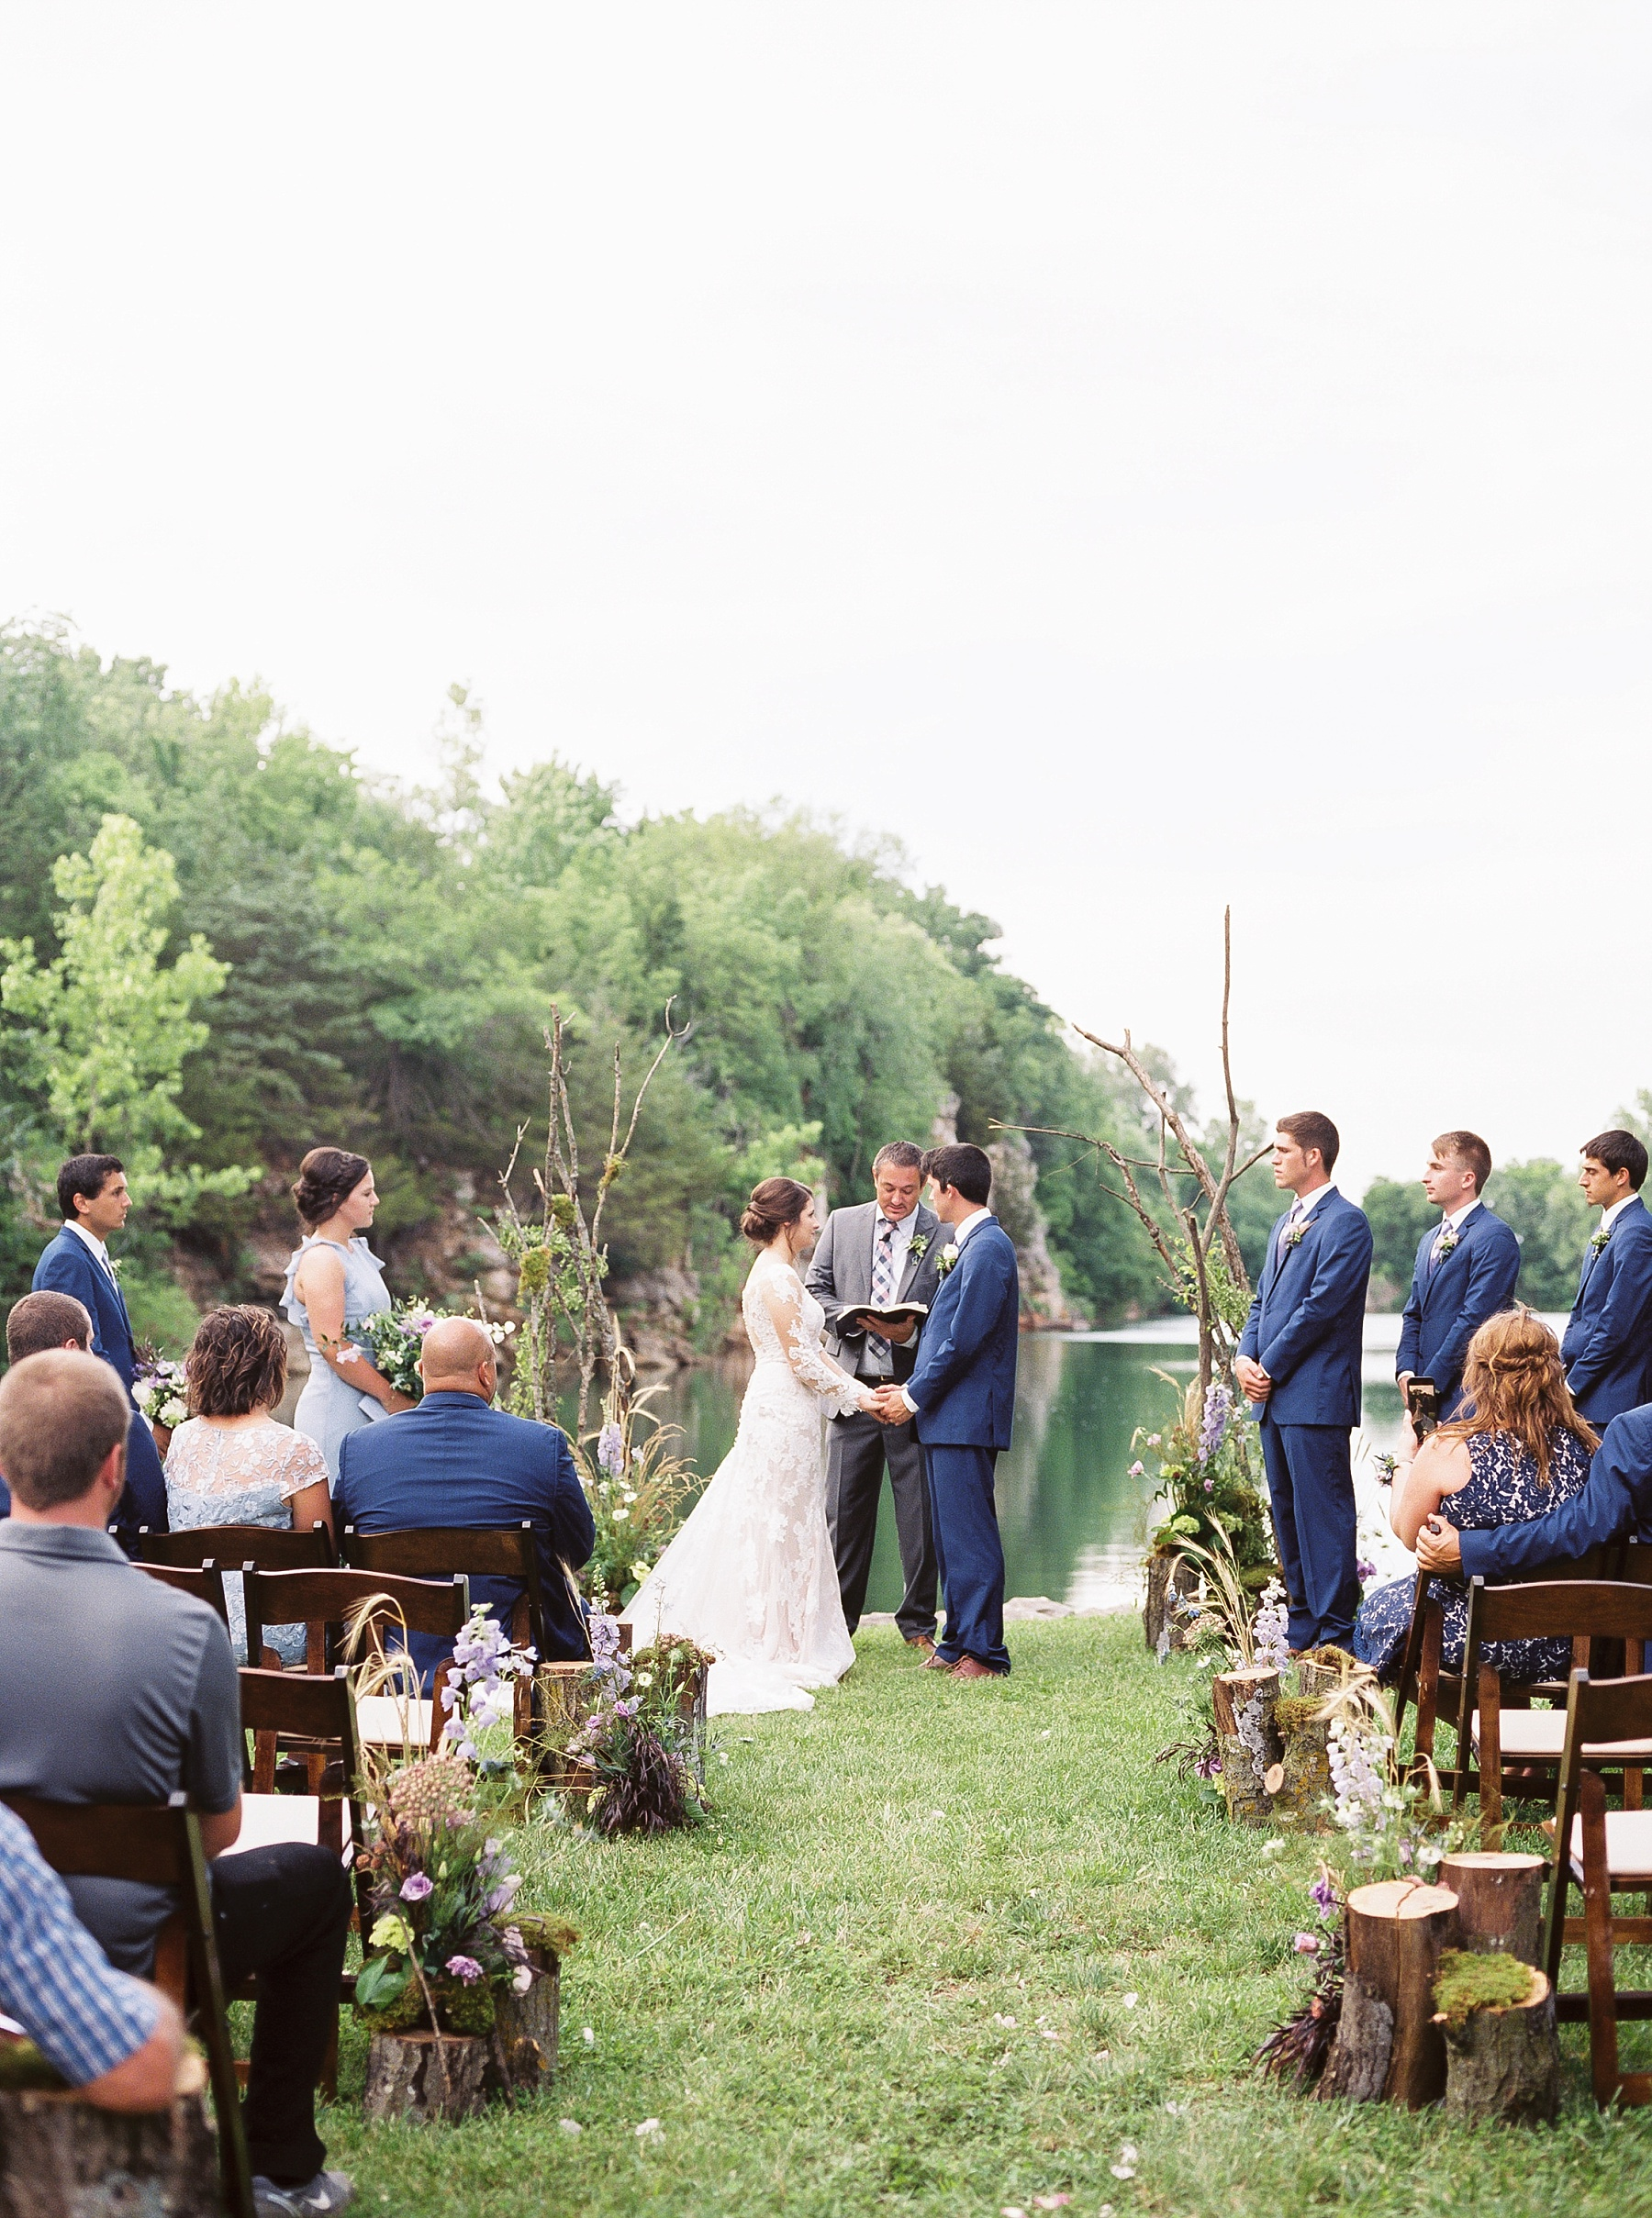 Intimate Mountain Hues Inspired Summer Wedding at Wildcliff Weddings and Events by Kelsi Kliethermes Photography Best Missouri and Maui Wedding Photographer_0066.jpg